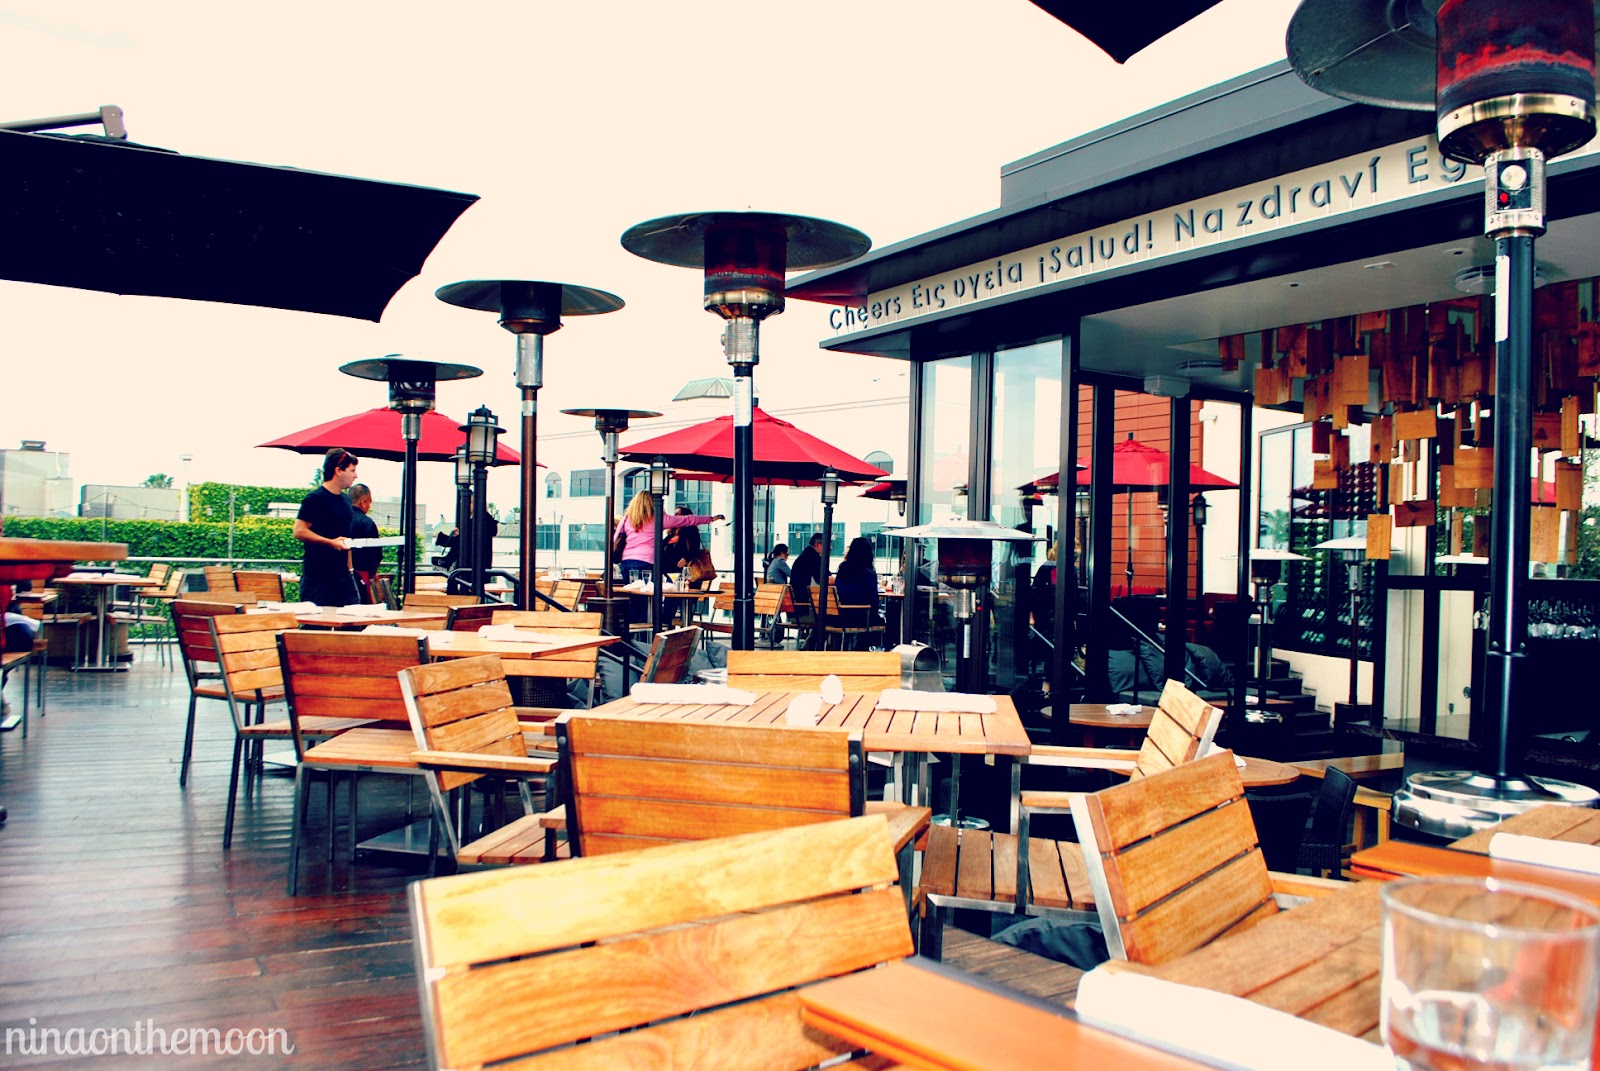 ... From Full Figured Potential At Sonoma Wine Garden, In Santa Monica. I  Really Liked The Restaurantu0027s Layout: 1) Dining Room, 2) Deck 3) Patio And  4) Bar; ...